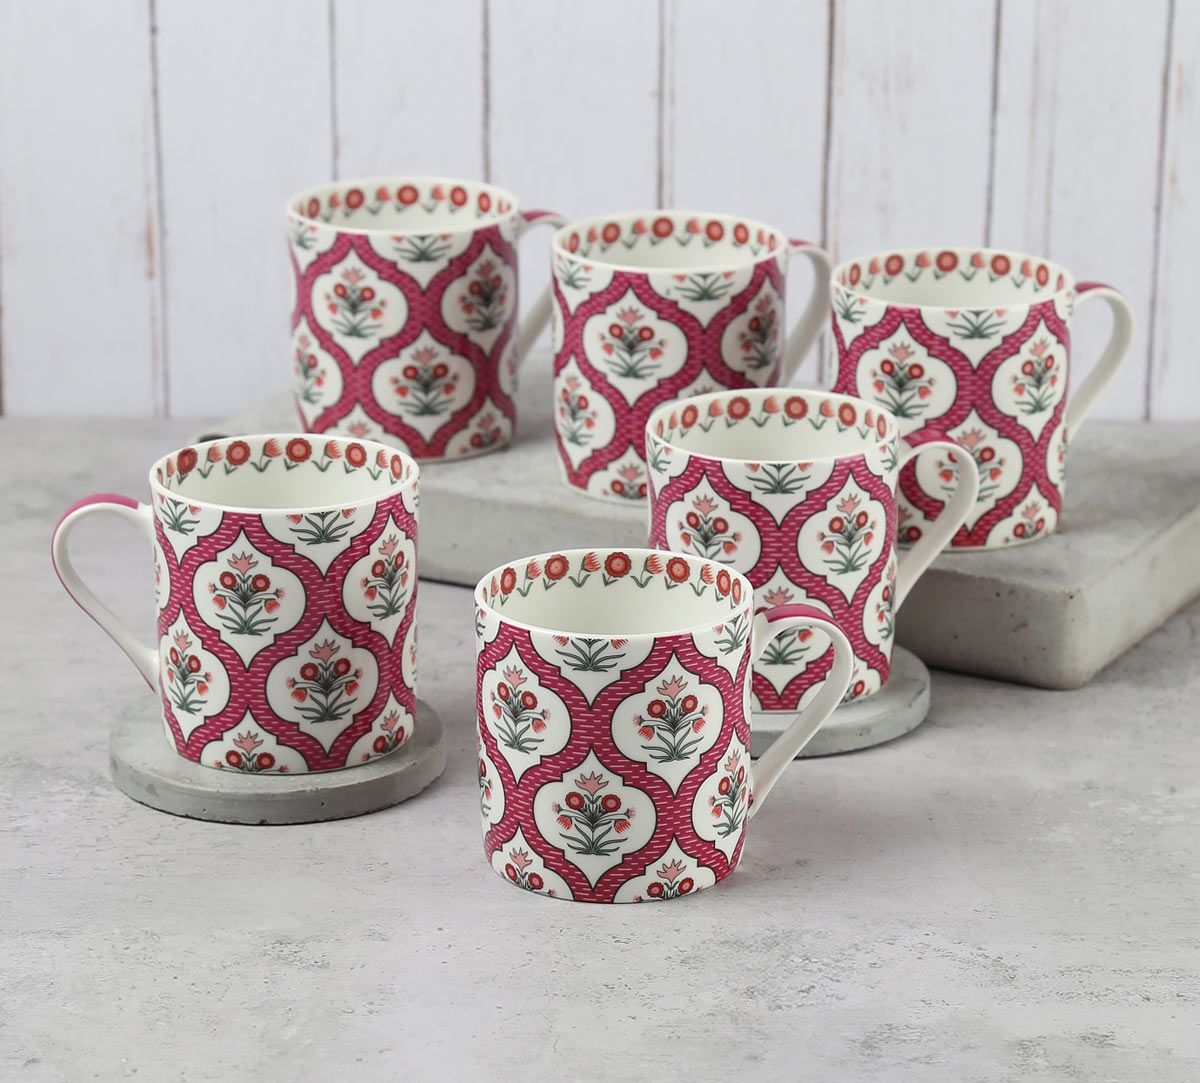 India Circus Pink Lattice Motifs Coffee Mugs Set of 6